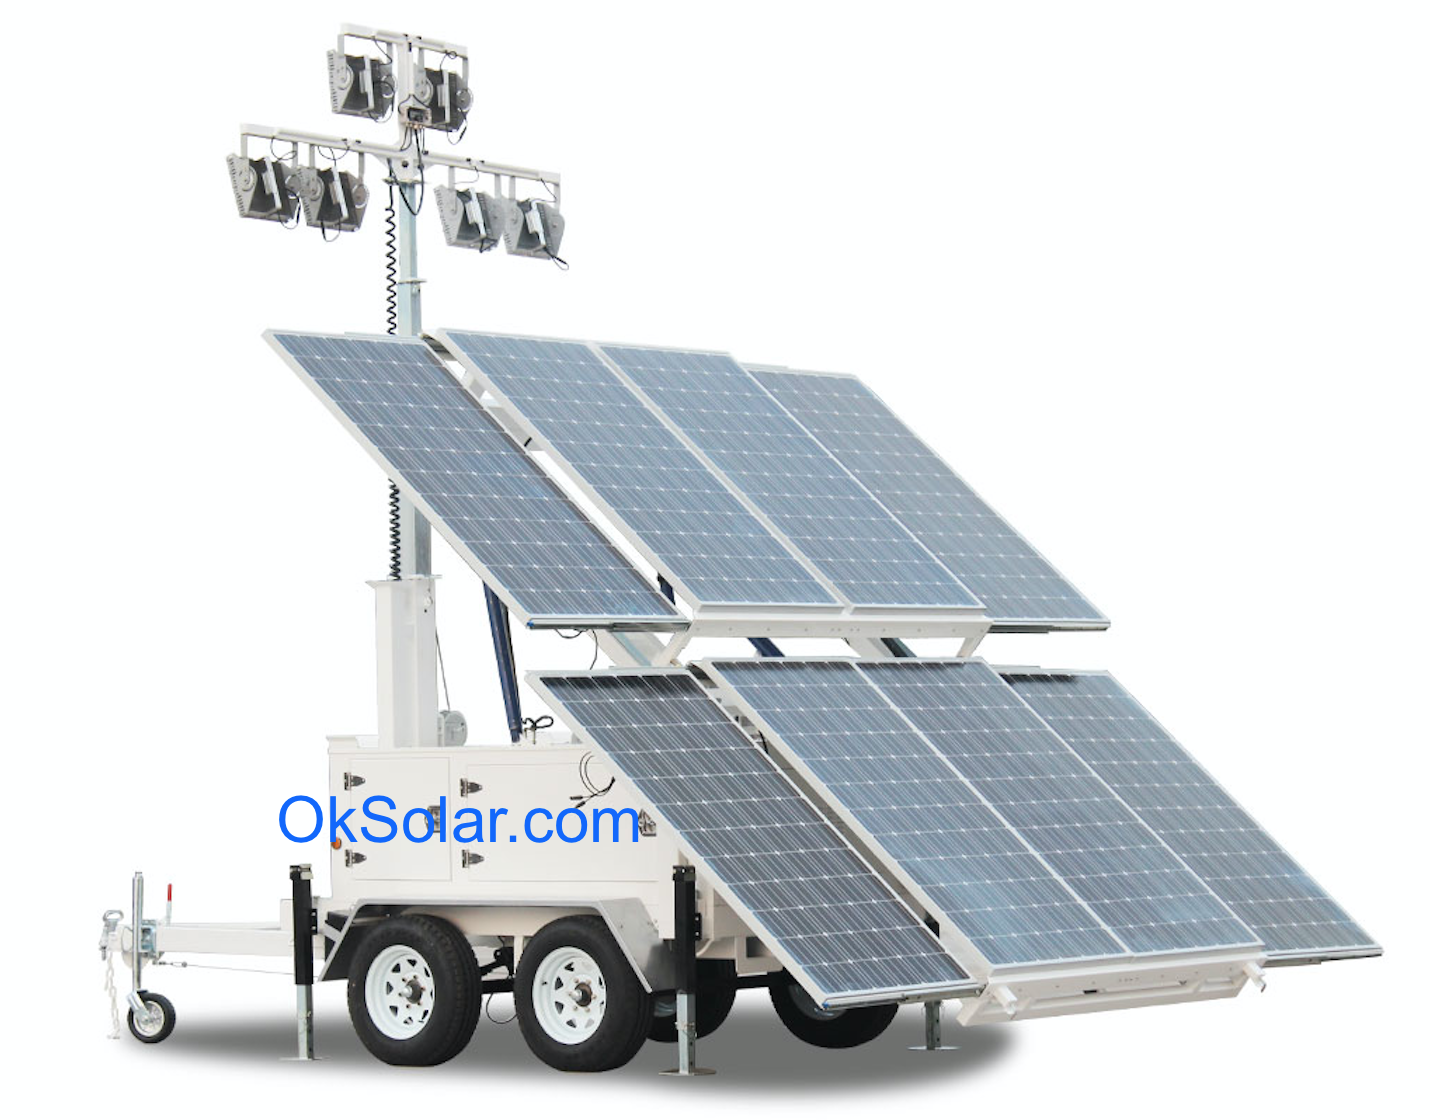 Remote and Off-Grid Solar Power Systems and Storage, Highway Infrastructure Off-Grid Solar Power, Remote and Off-Grid Solar Power Systems, Remote Solar Power, Remote Solar Power DC, Remote Solar Power AC, Solar Electric Supply, Off-Grid Solar Power, Solar Traffic Signs, Solar Powered Obstruction Light FAA approved L-810, Solar 24 Hour Flashing Light, Solar LED Rectangular Rapid Flashing Beacon, Off-grid solar electric power systems, off-grid solar power systems, Off Grid And Stand Alone Solar Power Systems, Complete Solar Systems, Solar Hybrid Power Systems, Off-Grid Solar Systems, Outdoor Rated Battery Backup Systems, AC & DC Backup Power Systems, Remote Solar Power Supply, Remote Solar Power Supply, Industrial Solar Power Supply, Remote Solar Power Supply,  Solar power supply, Solar powered Generator, Remote Solar powered, Off Grid Solar Energy, Solar Powered SCADA, Solar Energy, Solar Battery, Solar Trailer, Solar Powered Cathodic Protection, Portable Solar Power Generator System, Solar LED Street and Parking Lot Lights, Disaster Relief Solar Light Tower